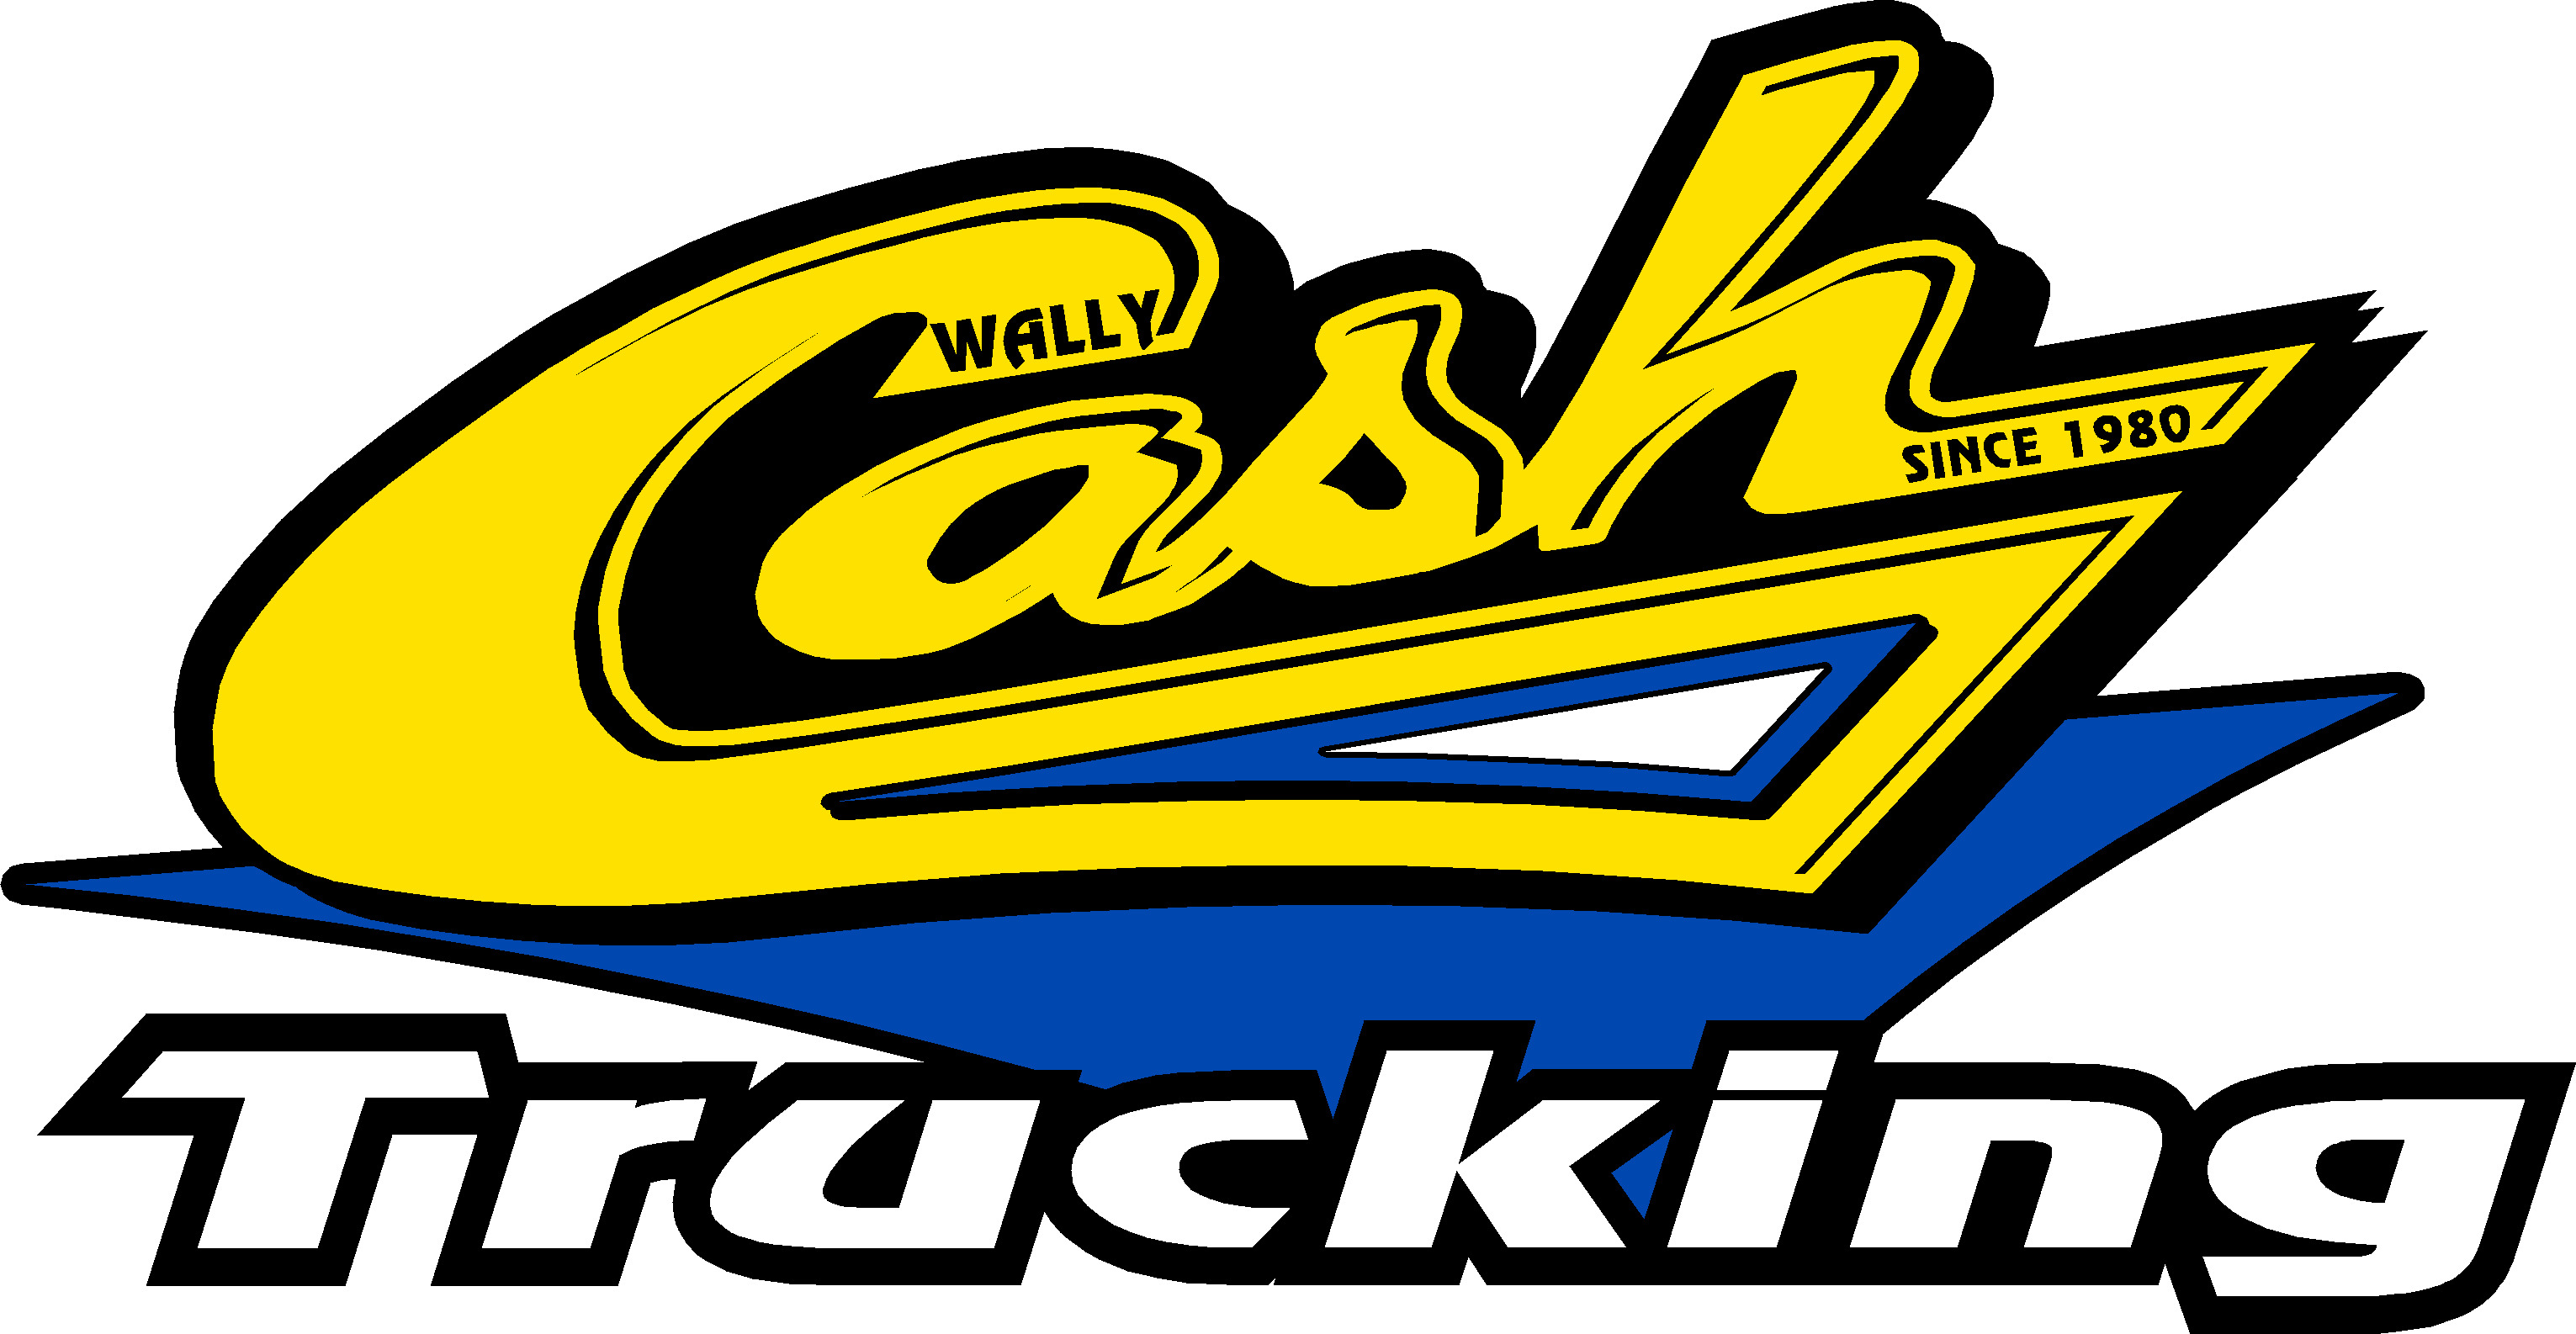 OTR Drivers HOME WEEKLY No Touch Freight - St. Paul, MN - Wally Cash Trucking, Inc.